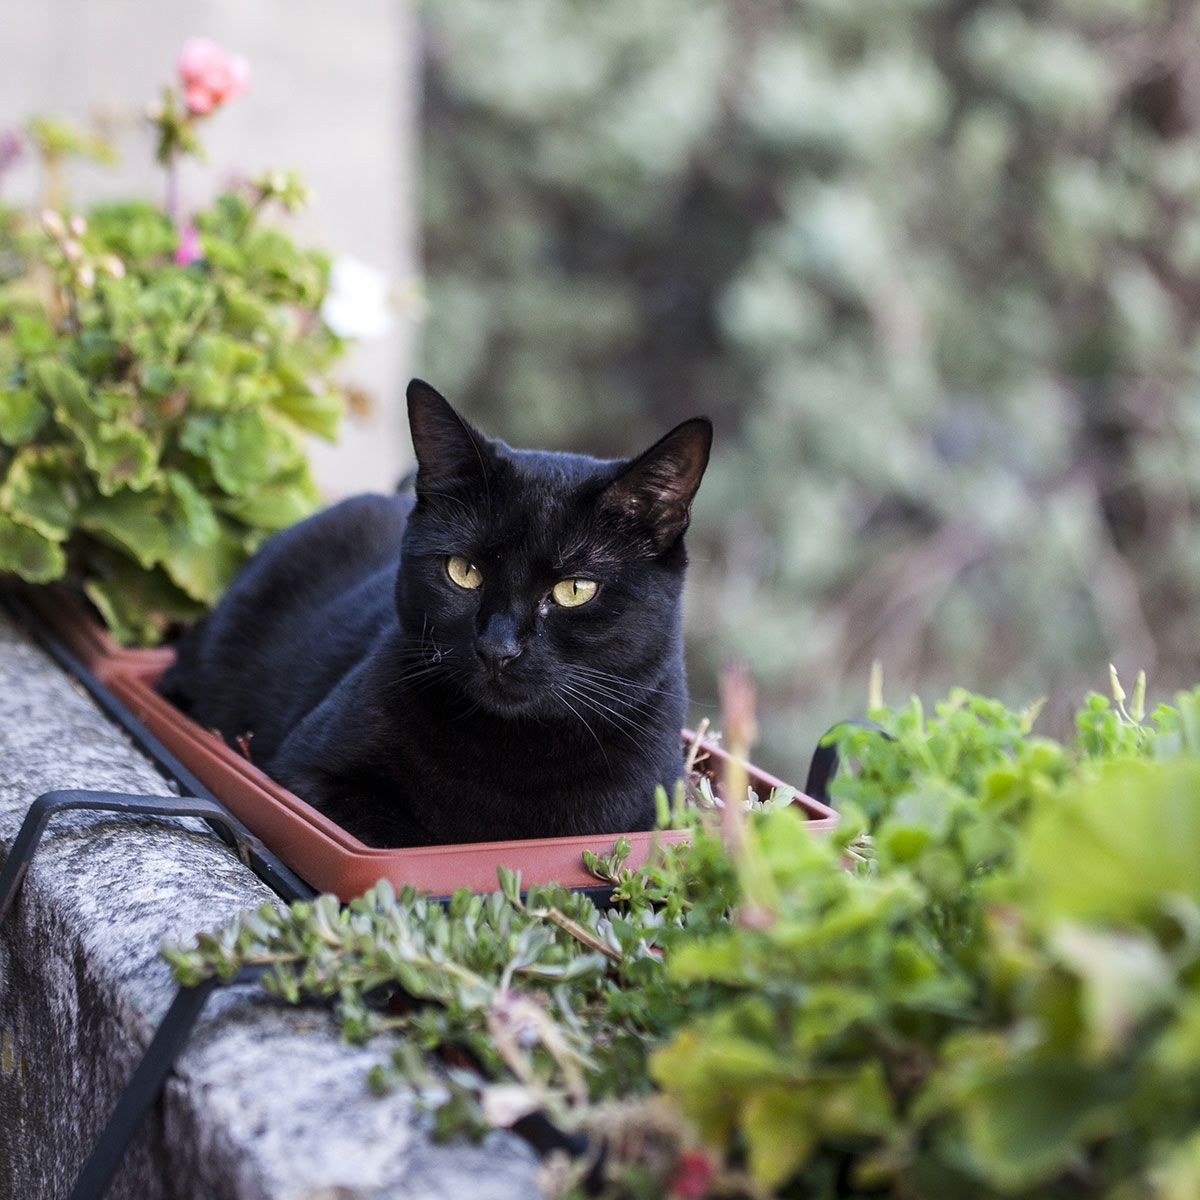 National Black Cat Appreciation Day August 17, 2019